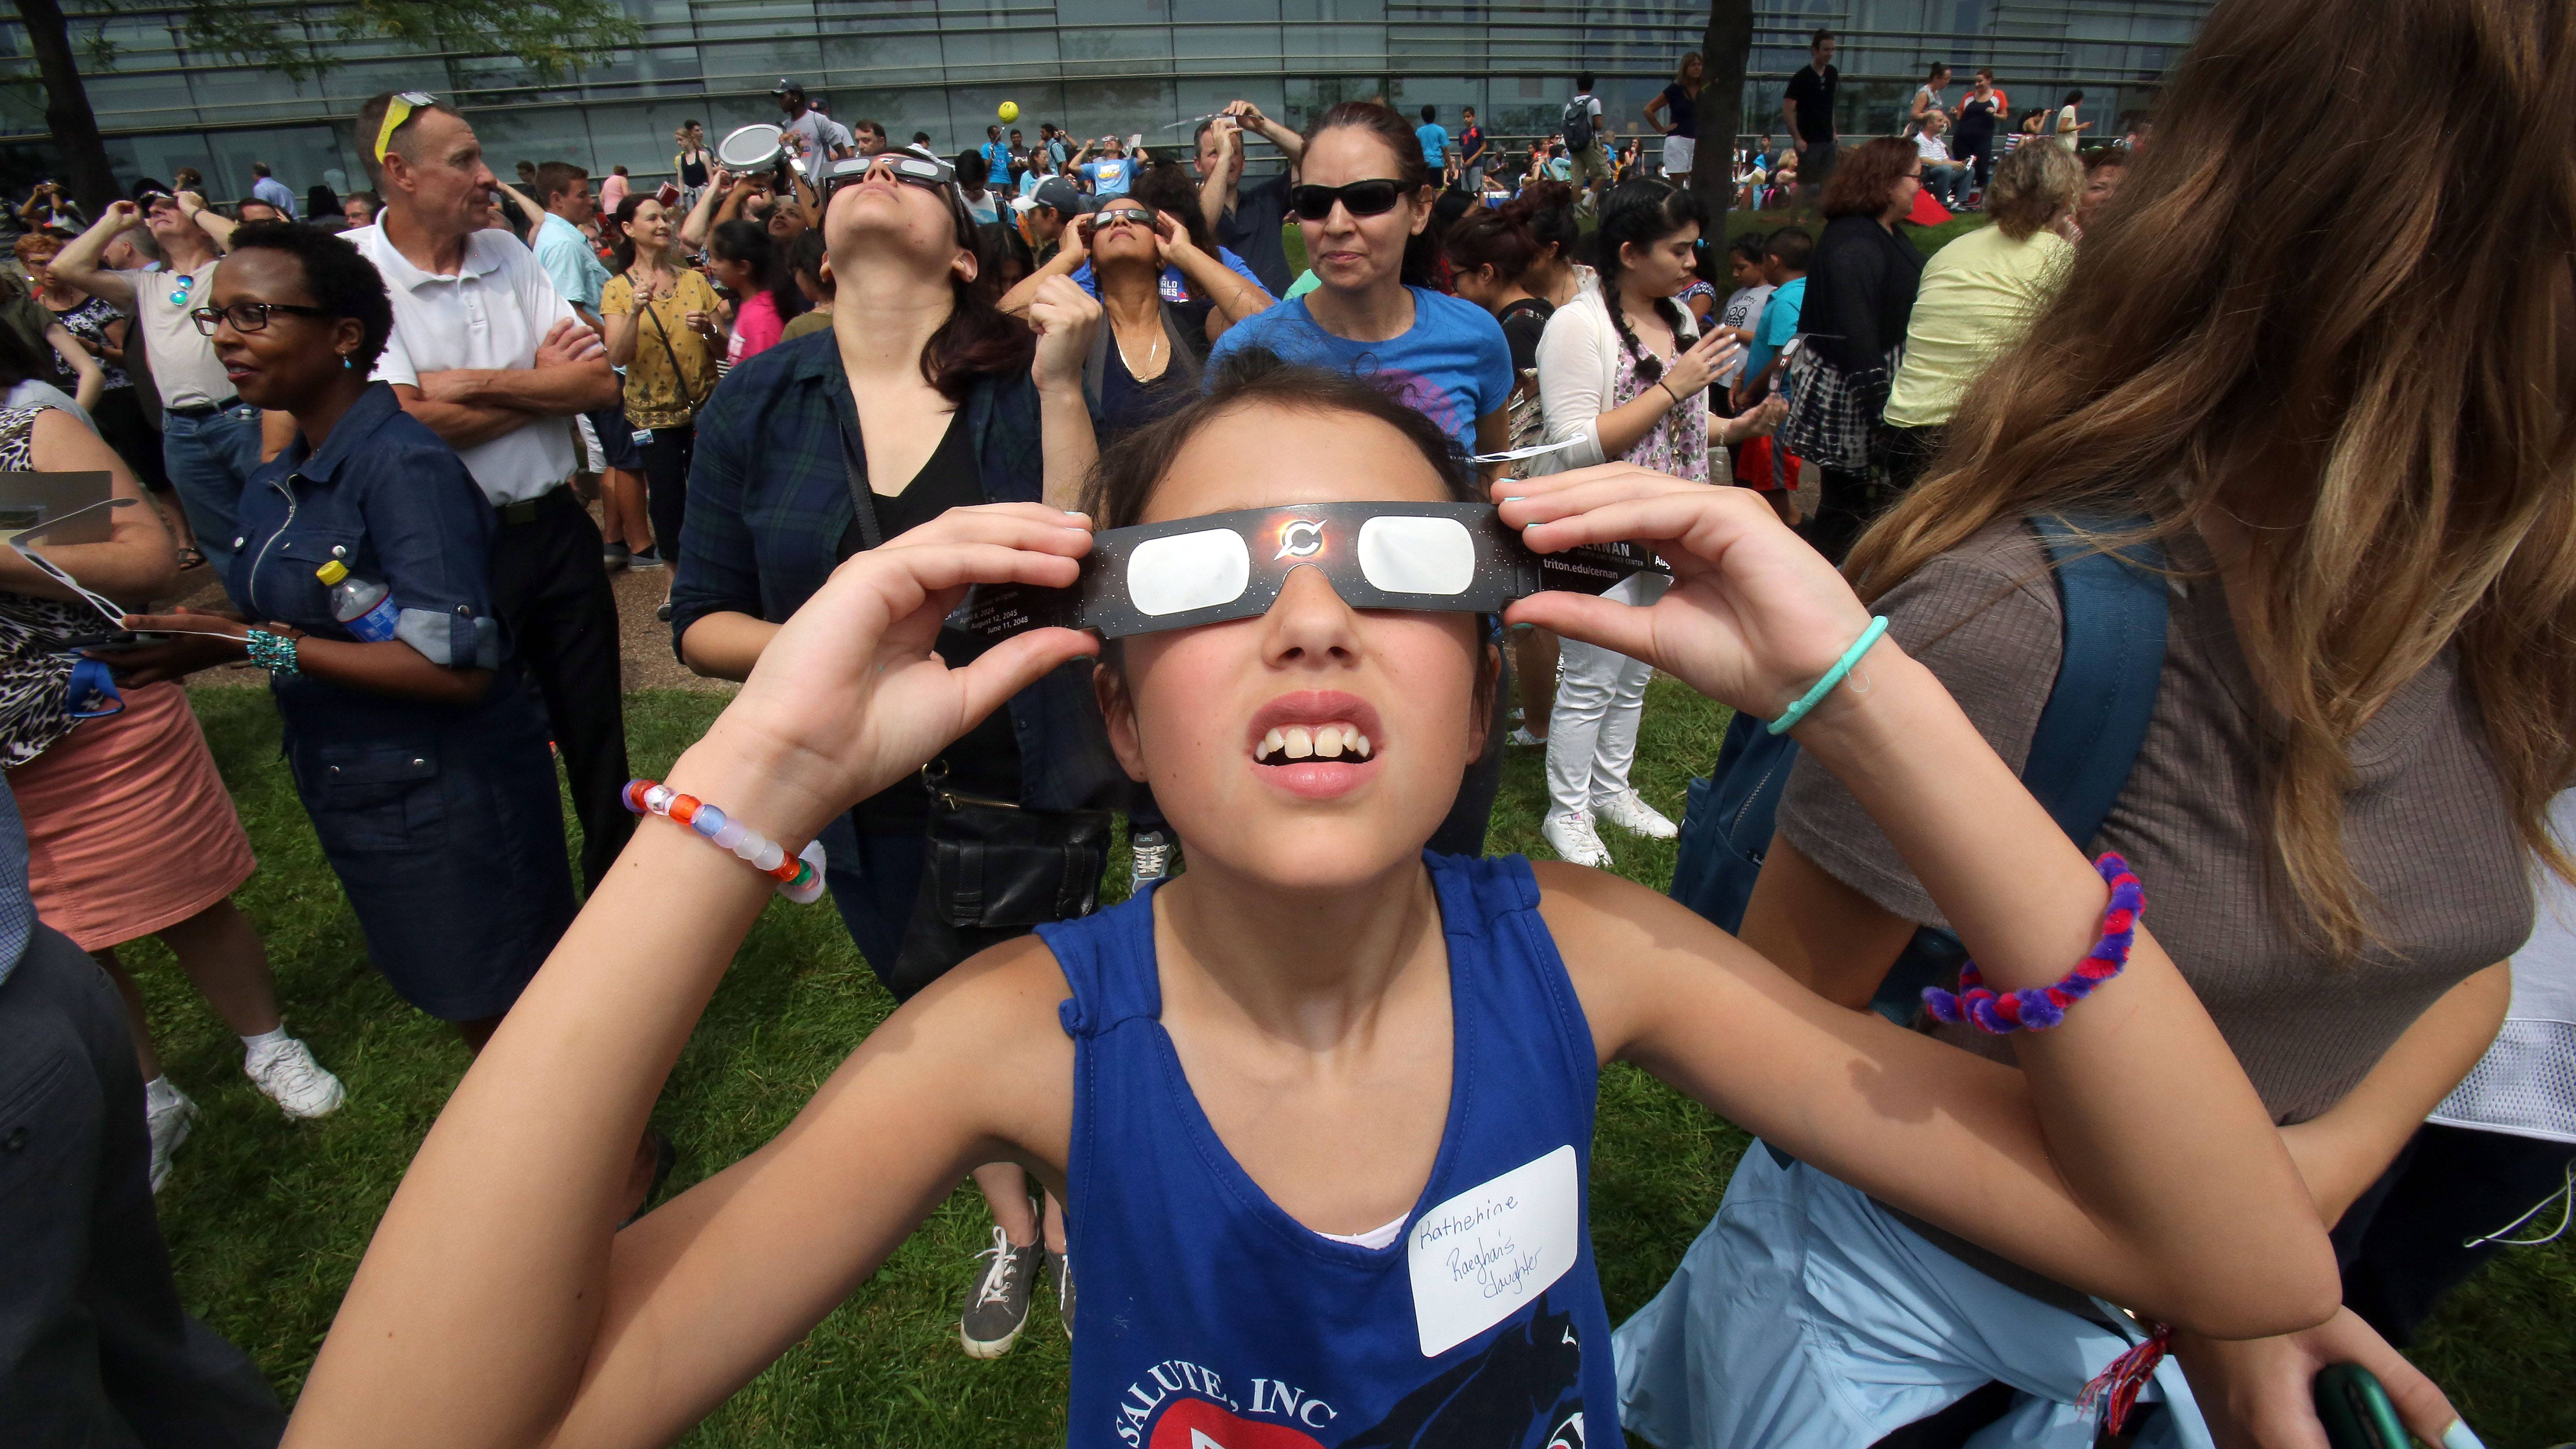 Donning special eclipse glasses, 9-year-old Katherine Graessle takes a look at the sun during Monday's solar eclipse viewing party at Harper College in Palatine.